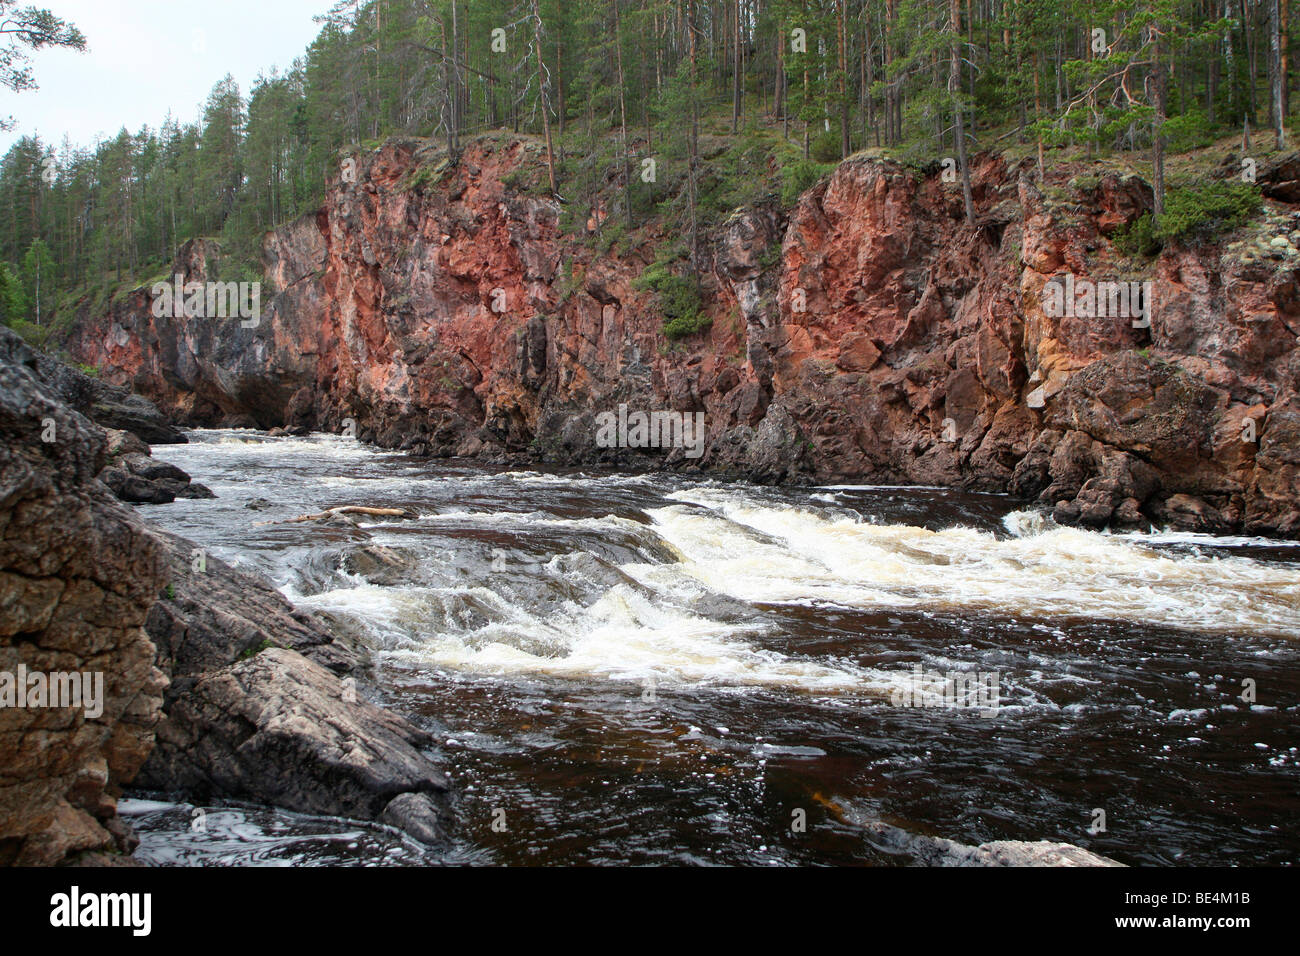 Red granite rocks in the rapids of the Oulankajoki river Oulanka in National Park, Lapland, Finland, Europe - Stock Image